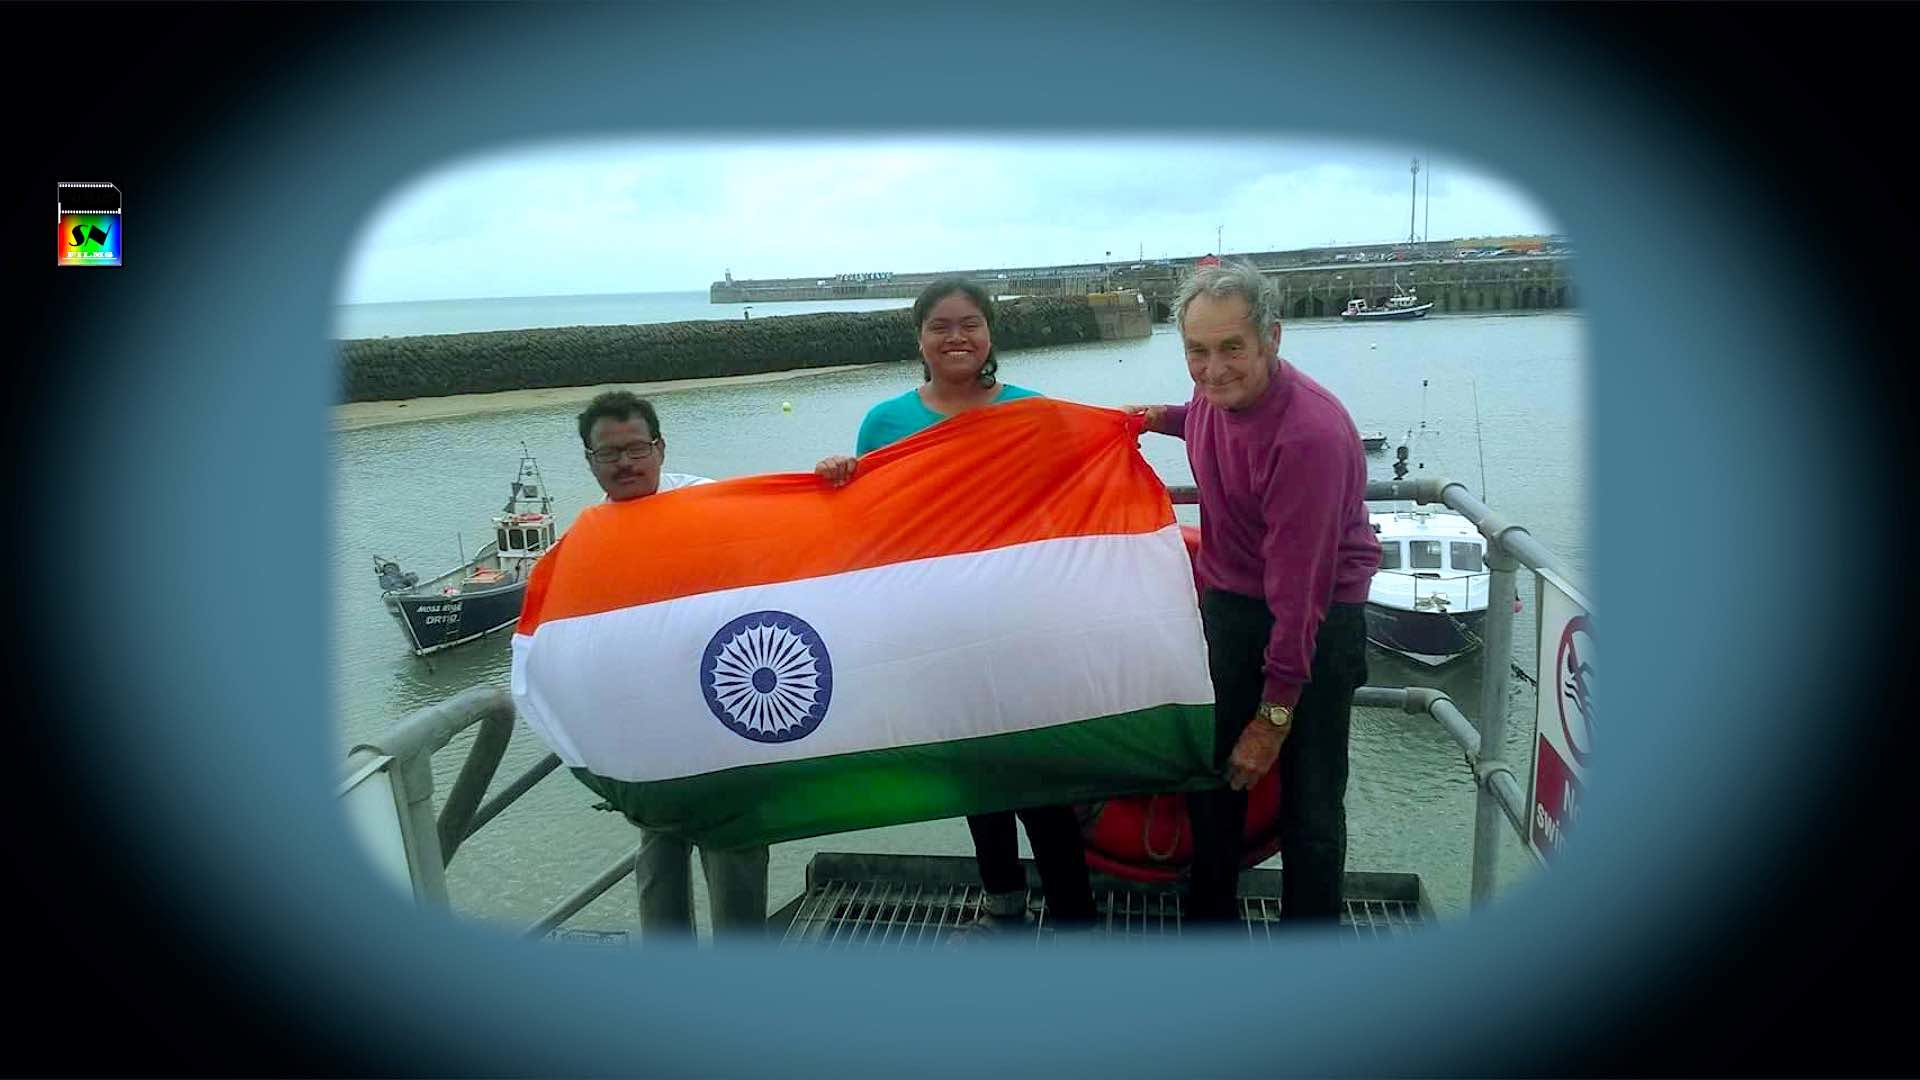 Sayani's Flag Hoisting Experience in England